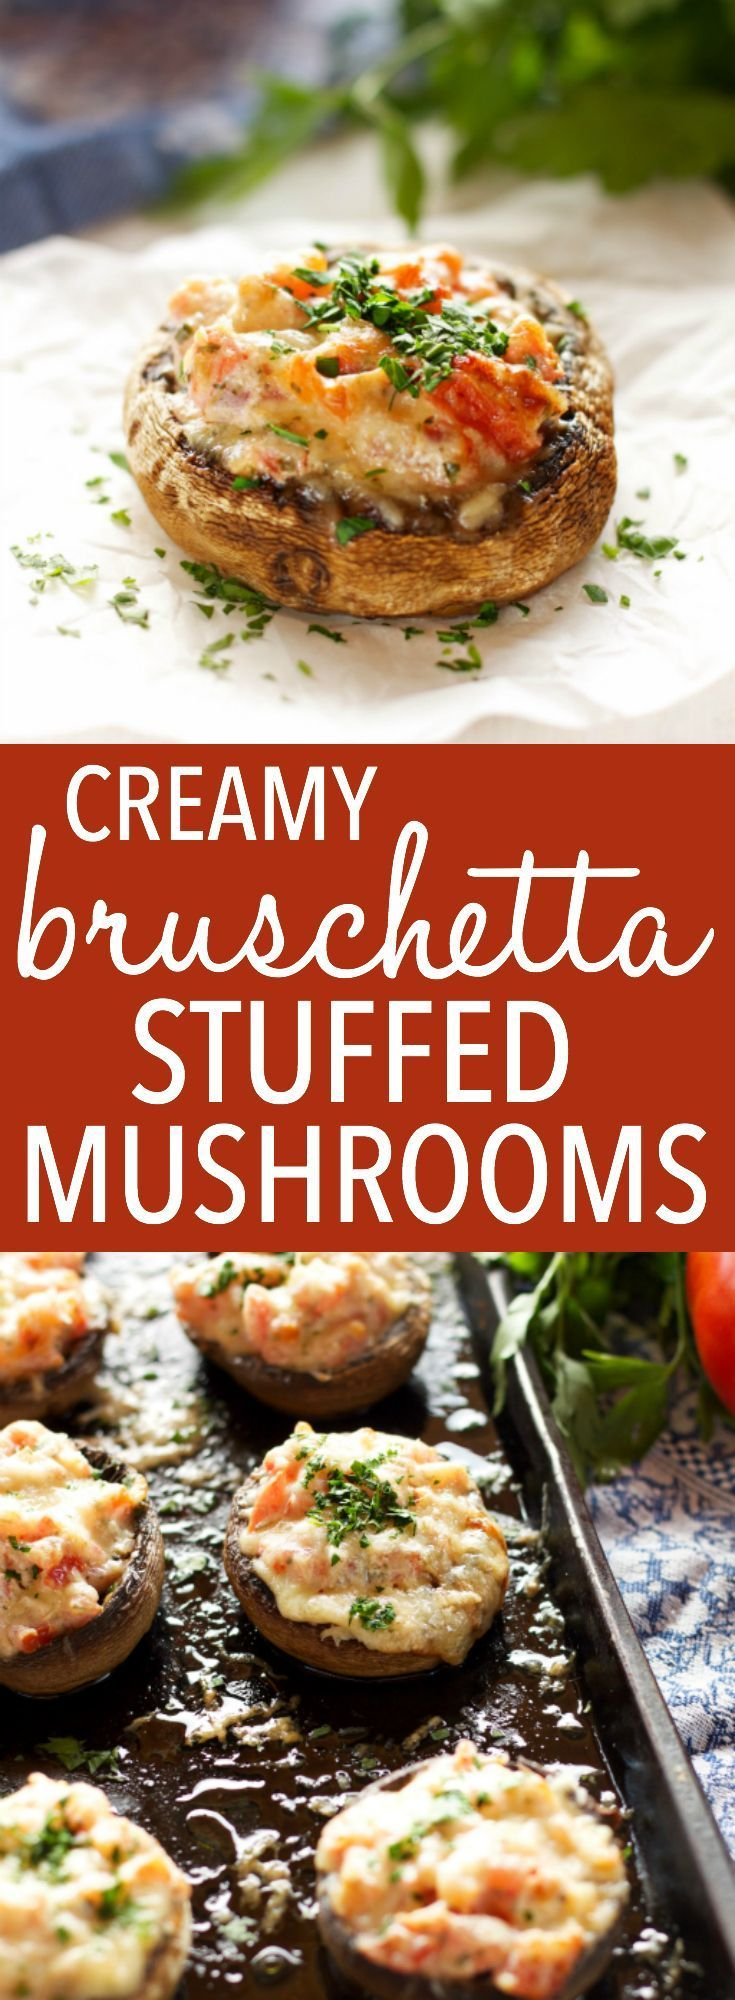 These Creamy Bruschetta Stuffed Mushrooms are the perfect easy appetizer packed with fresh tomatoes and herbs, and 3 delicious cheeses! Recipe by thebusybaker.ca! via @busybakerblog #easyholidayappetizer #holidaystuffedmushrooms #easystuffedmushrooms #italianappetizer